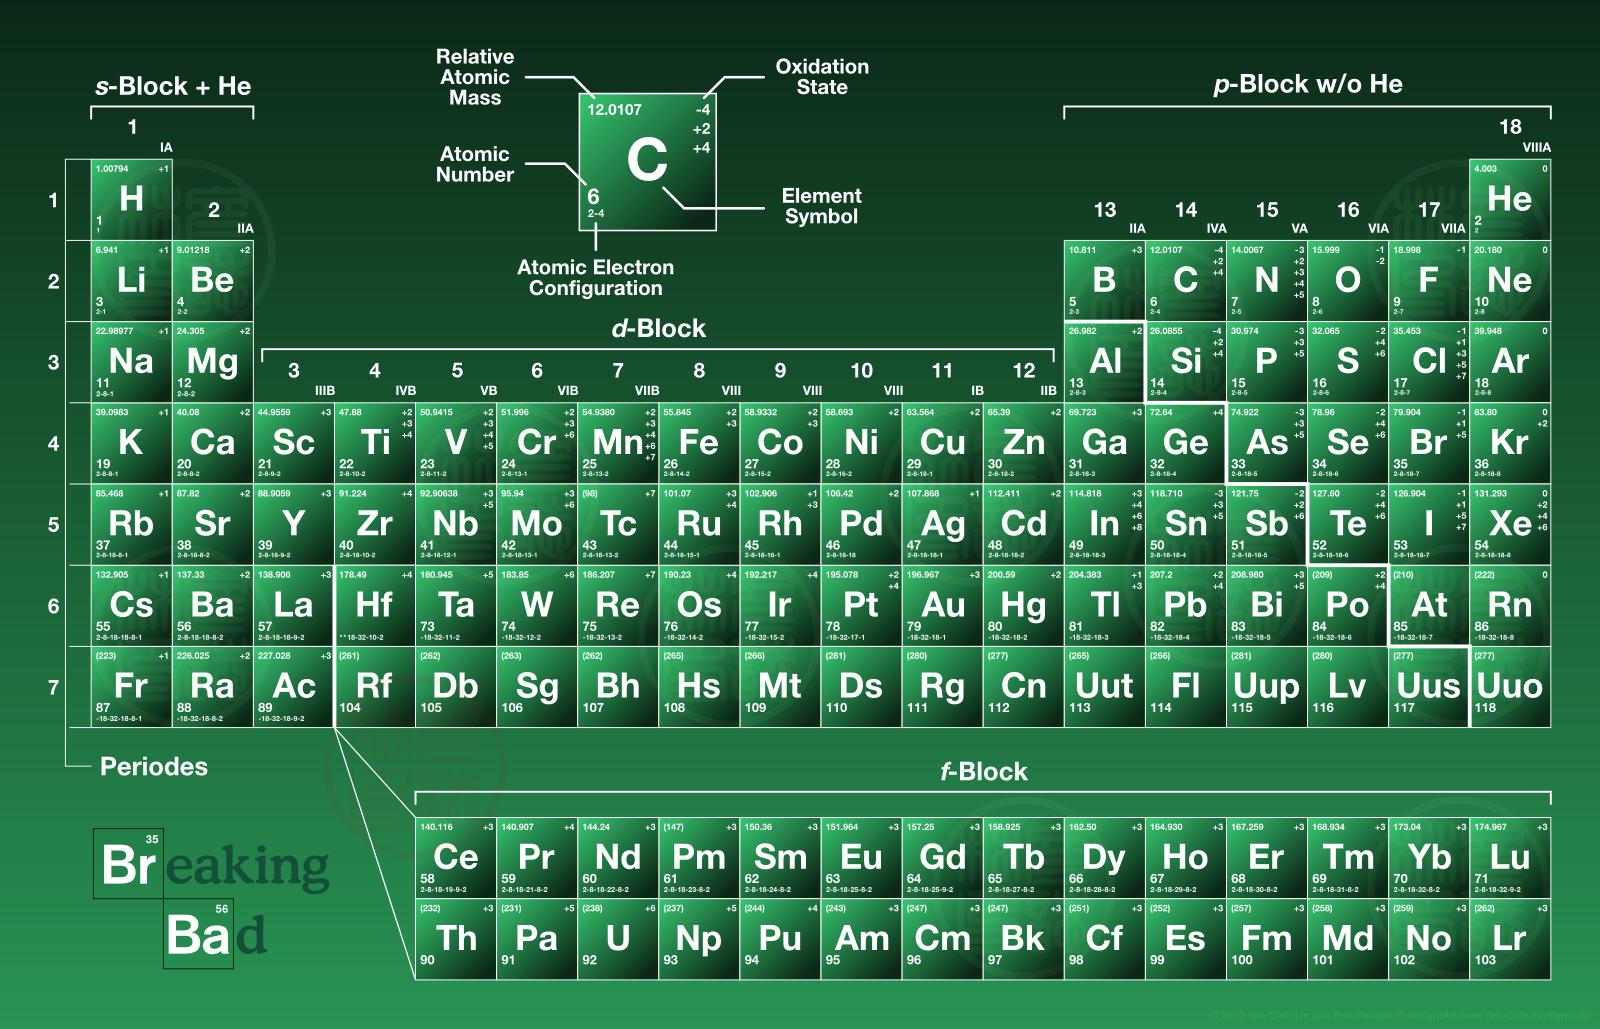 New breaking bad periodic table name generator android breaking bad generator table periodic name android name generator bad age table periodic bad breaking breaking urtaz Image collections